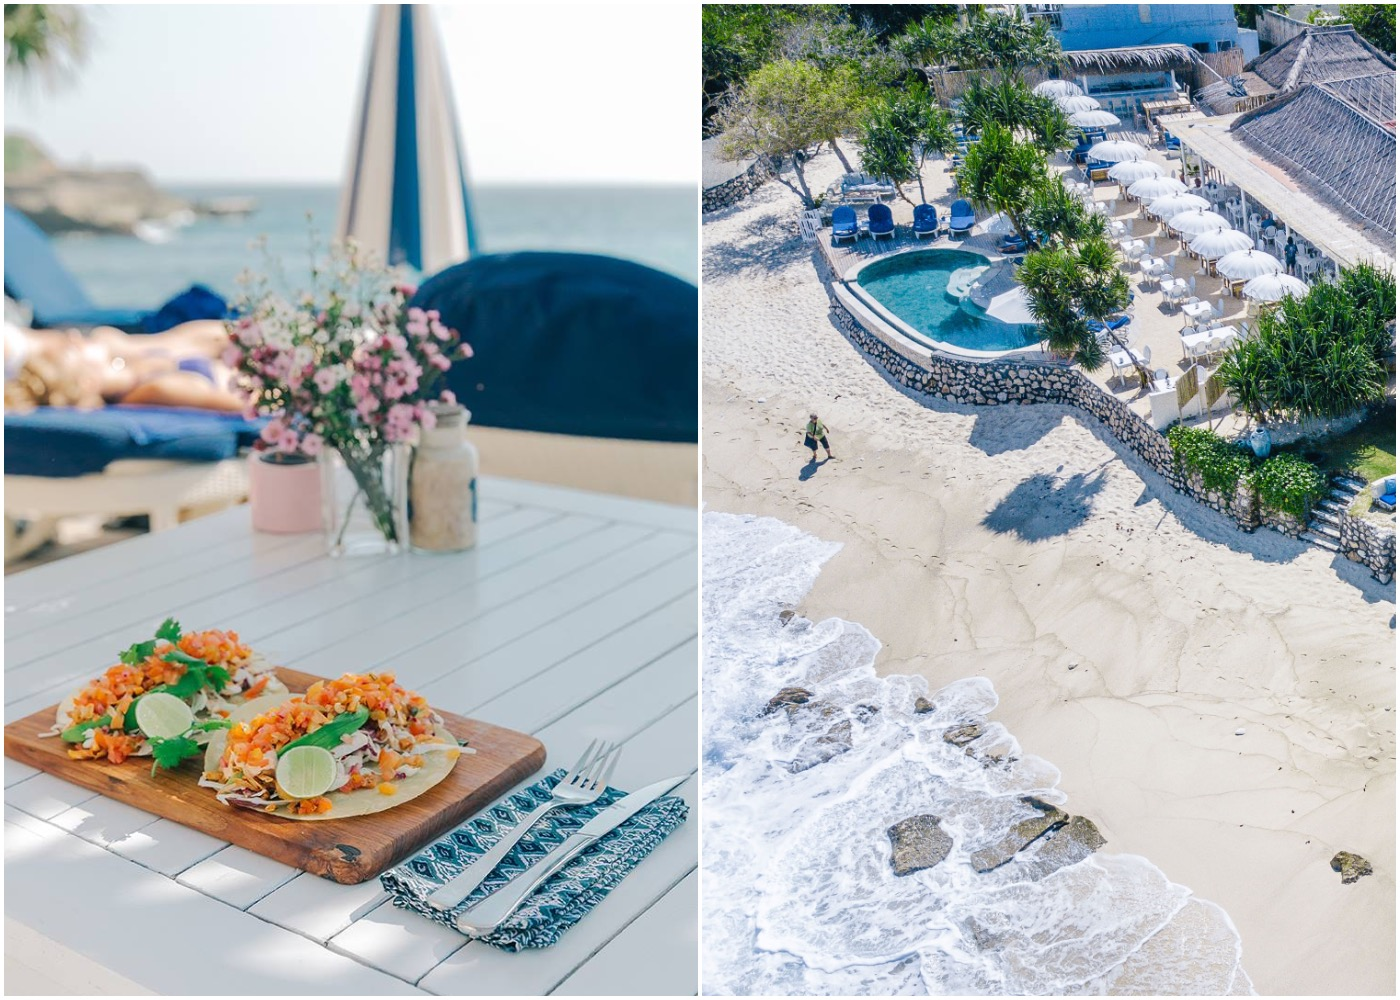 Tacos & view of Sandy Bay Beach Club & restaurant on Nusa Lembongan in Bali, indonesia